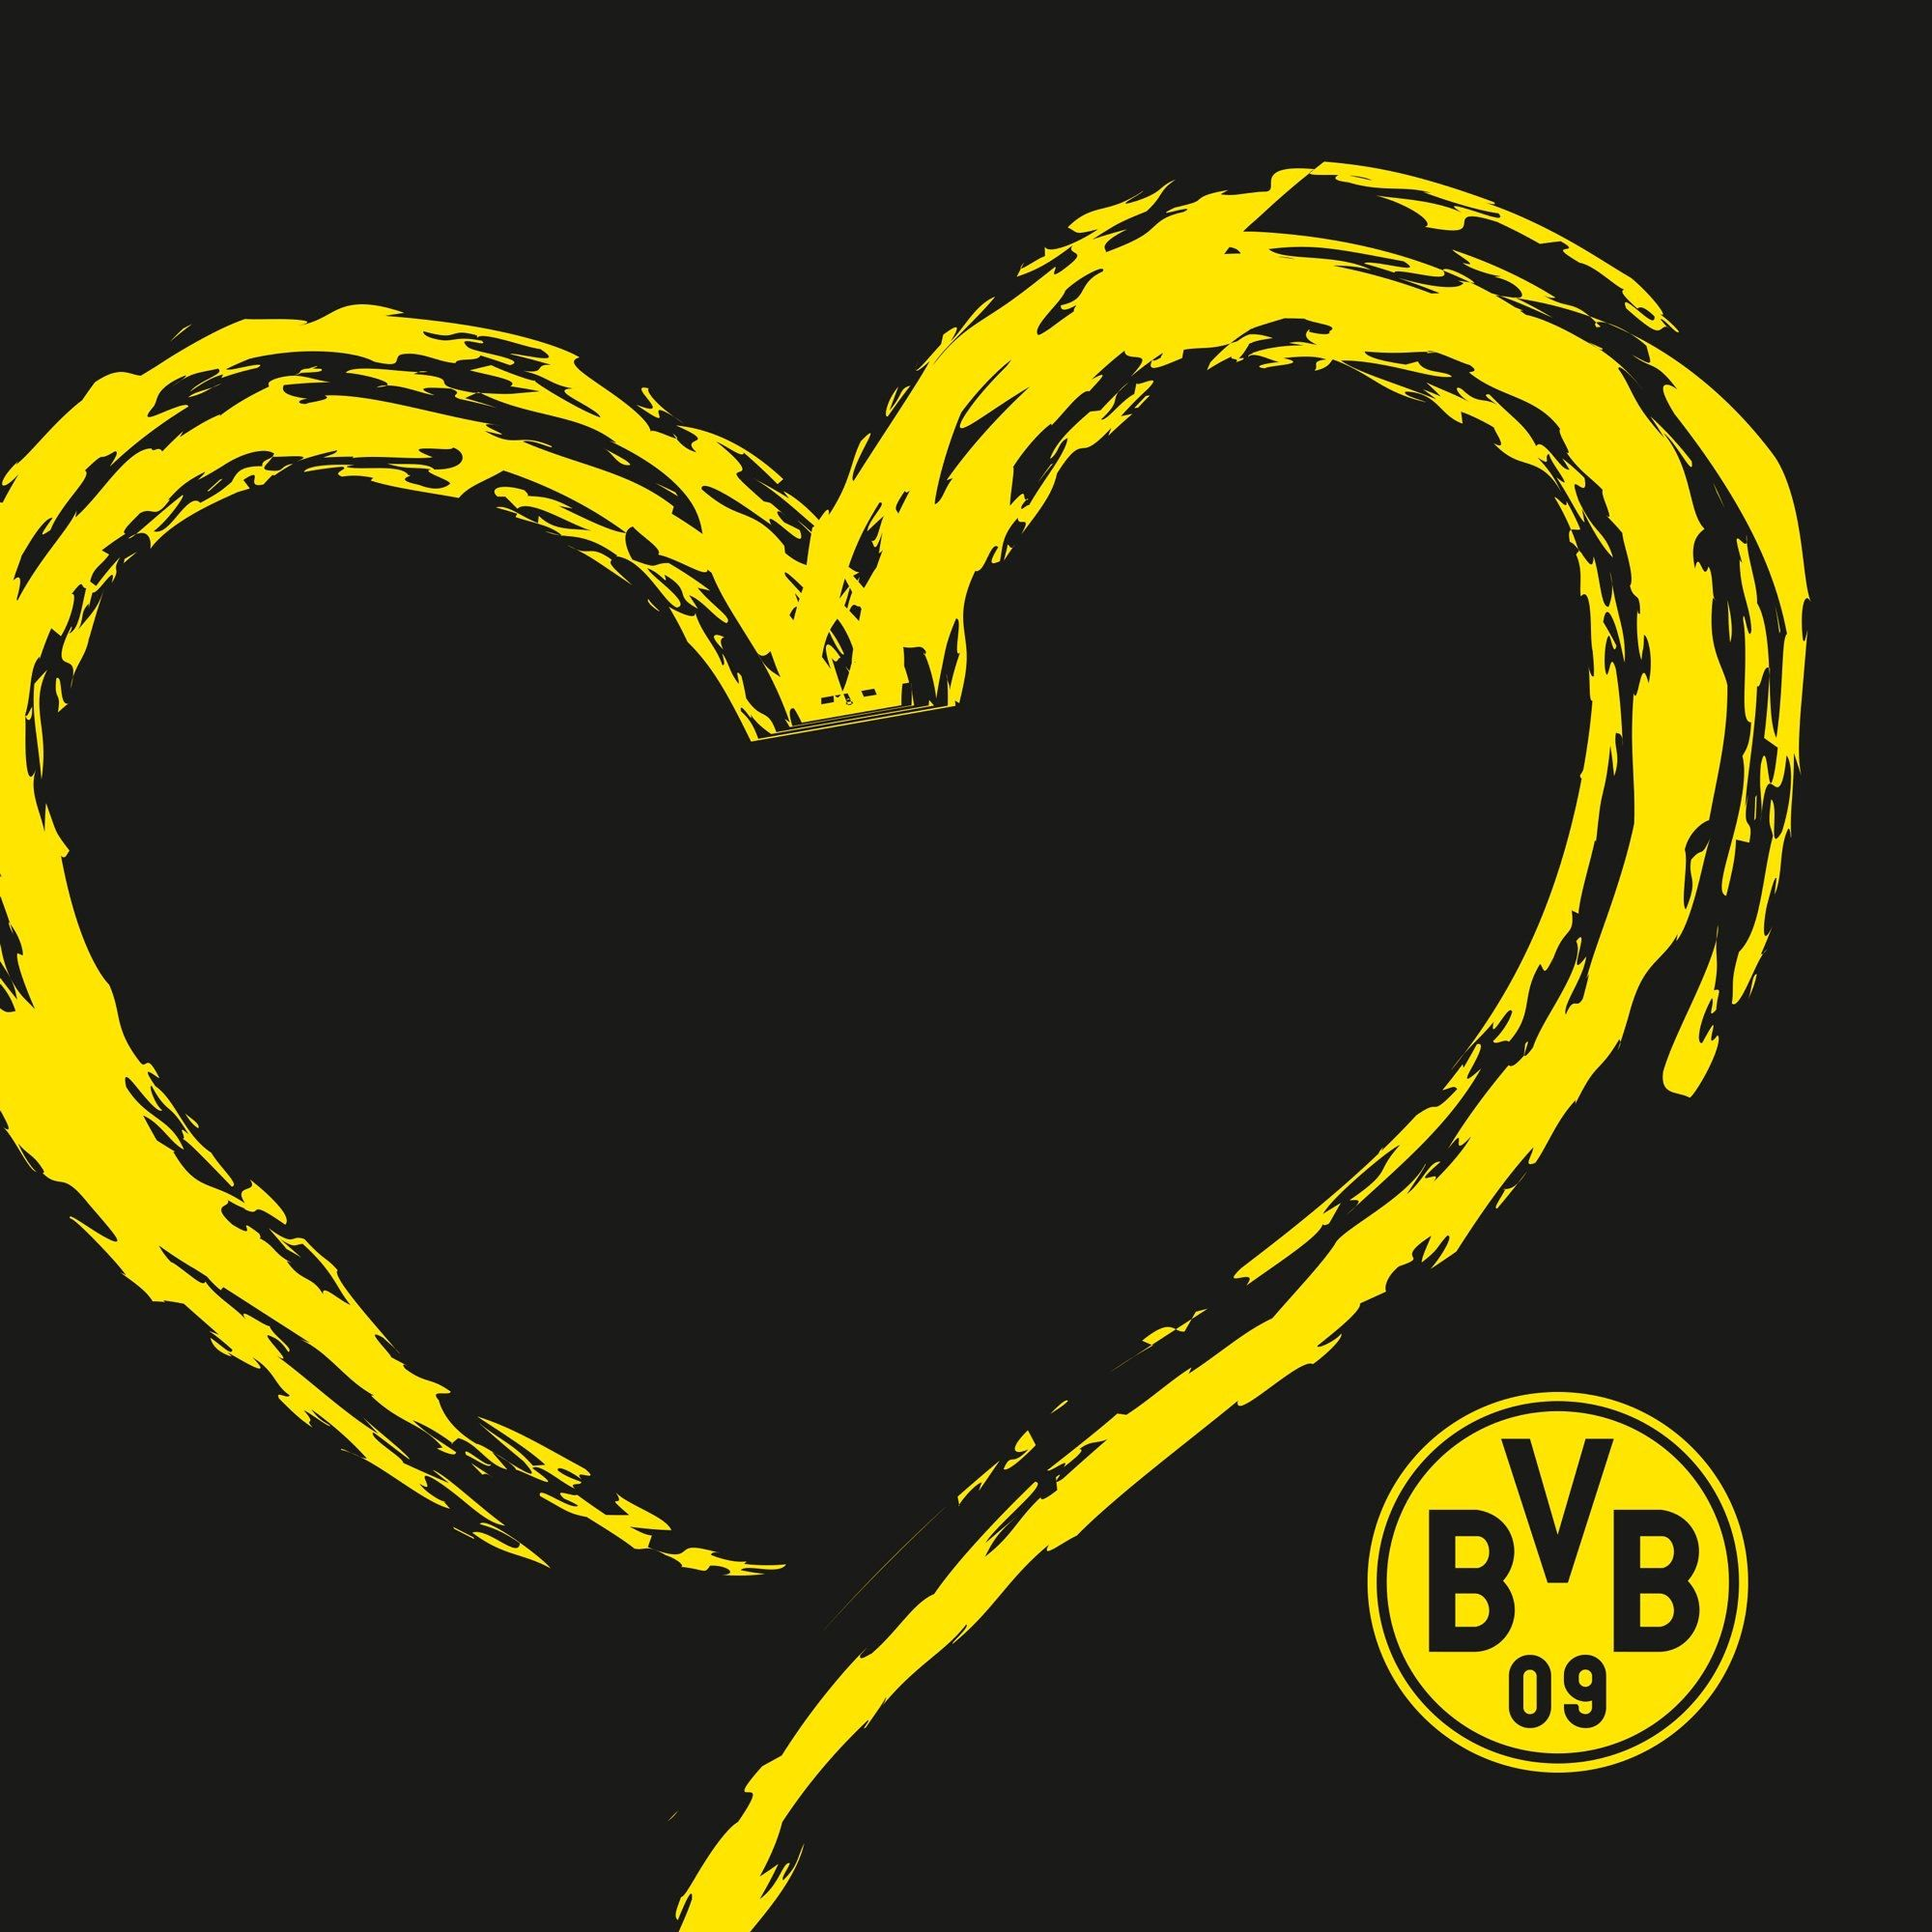 pin von taz1306 auf bvb 09 borussia dortmund bvb. Black Bedroom Furniture Sets. Home Design Ideas